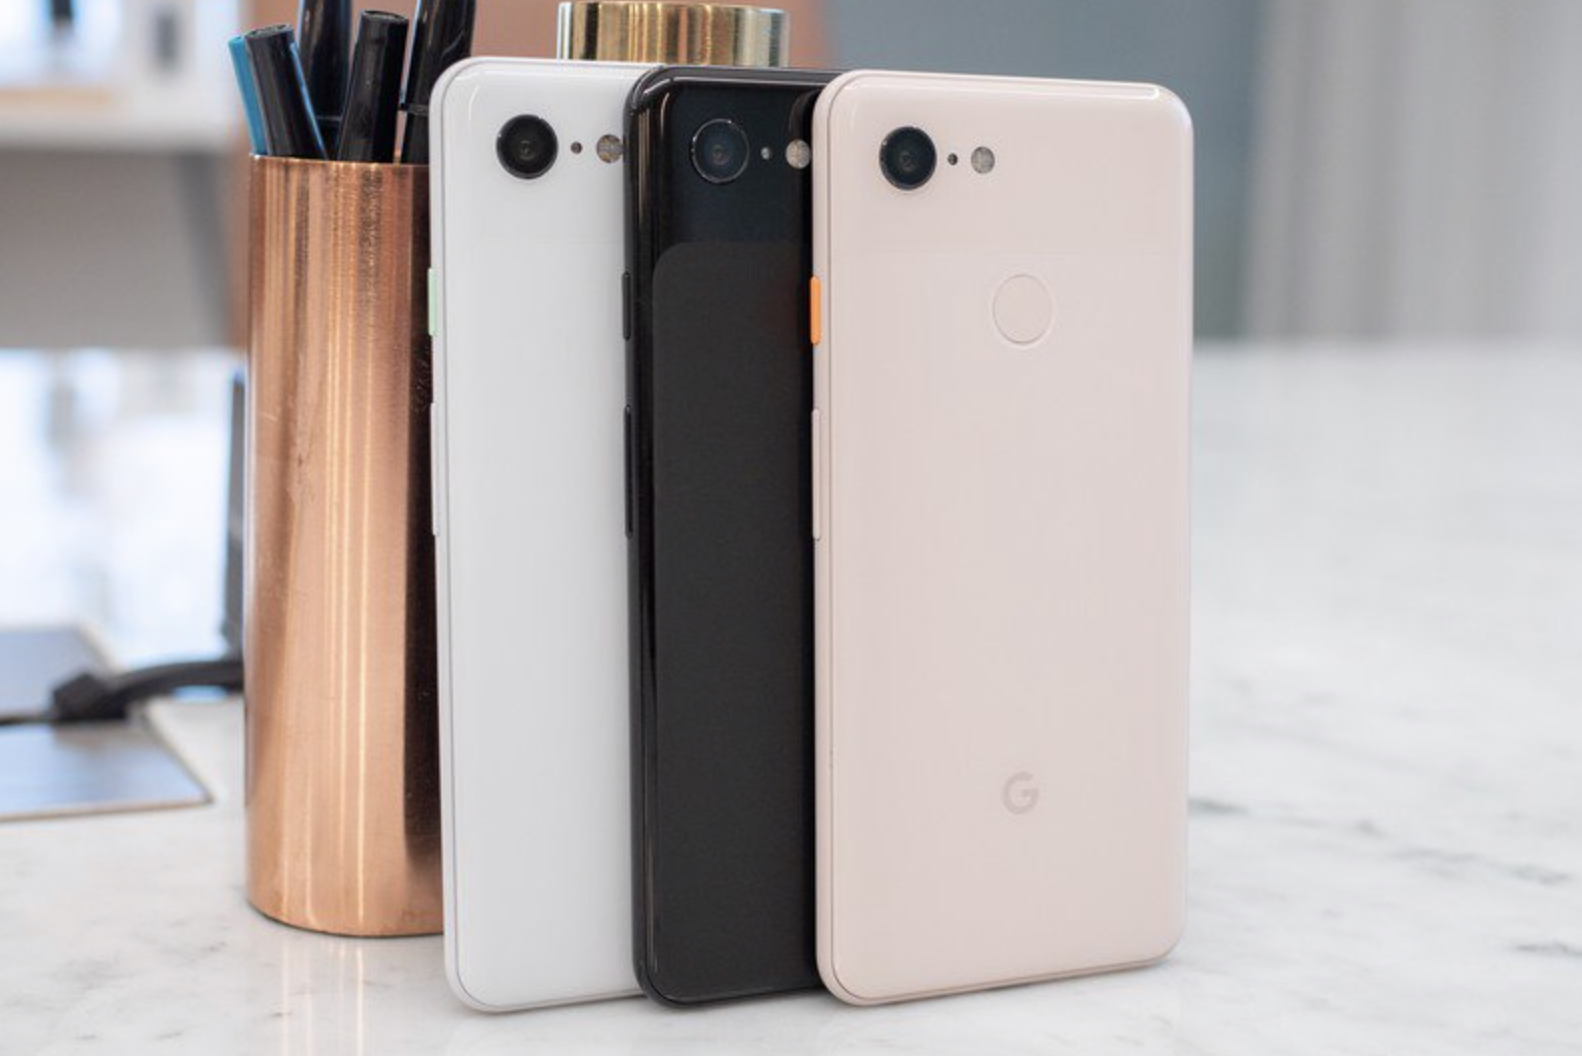 Google introduced Google Pixel 3 and Pixel 3 XL